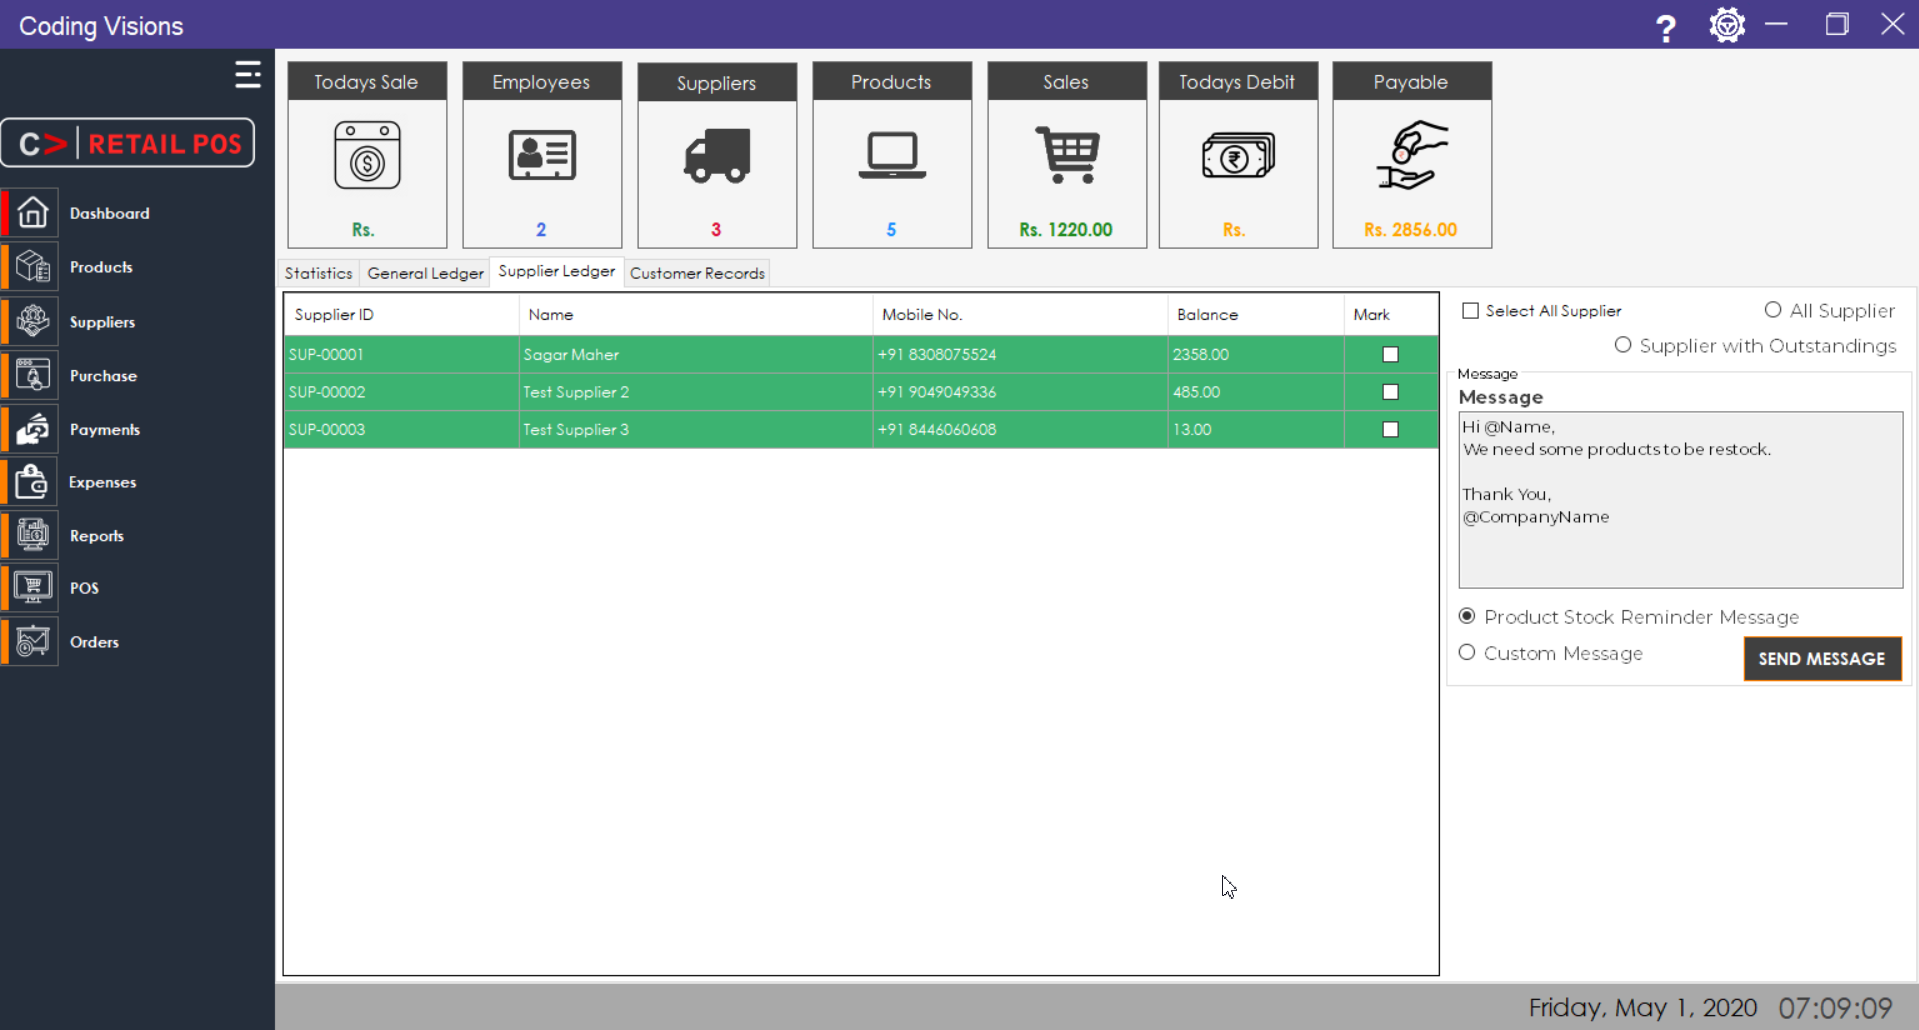 Cv Retail Pos Source Code Complete Pos Solution Pos Coding Windows System